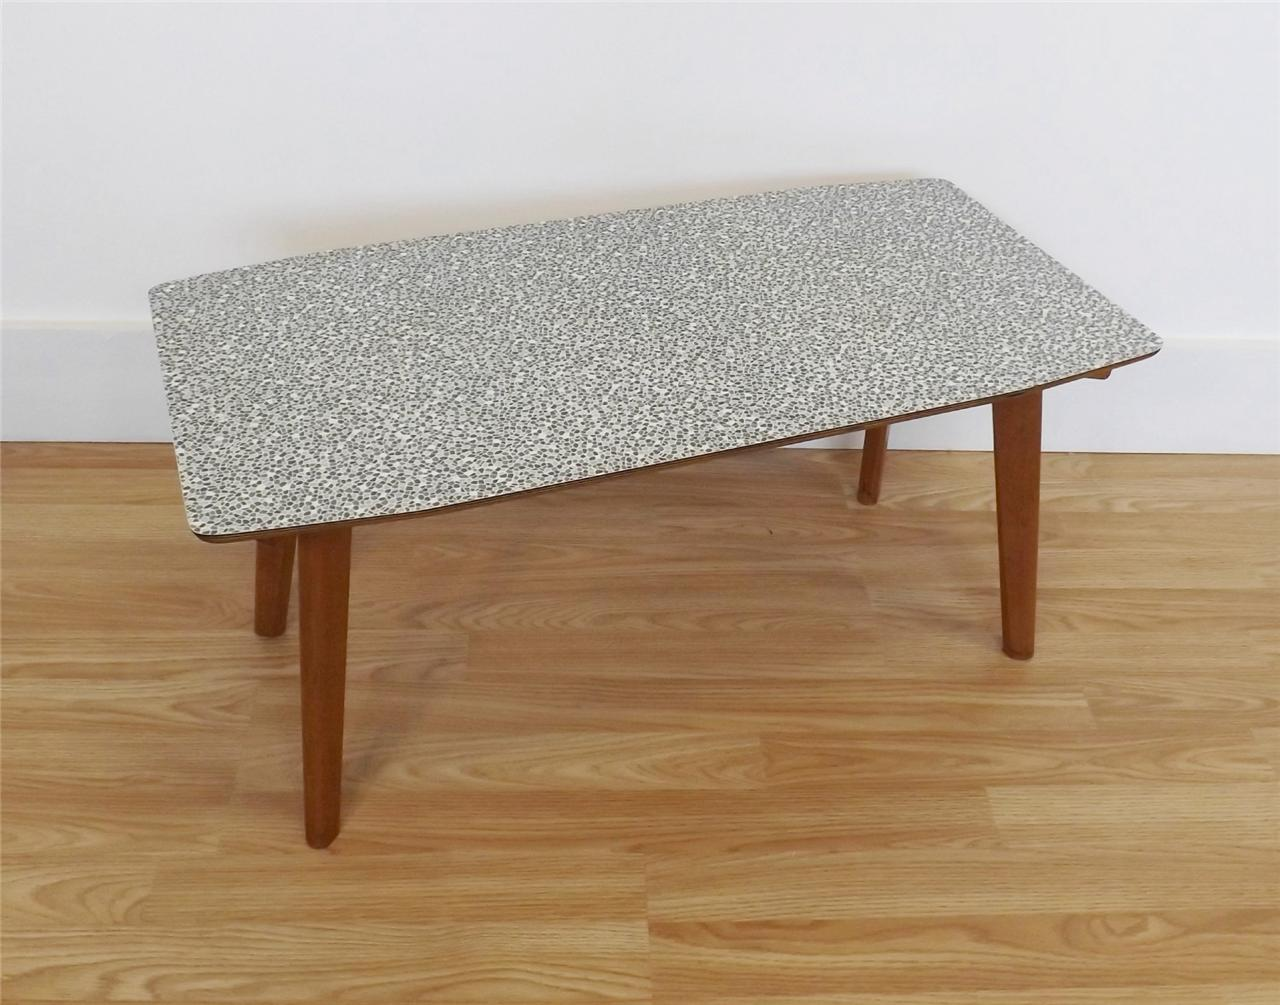 formica coffee table retro vintage mid century atomic 50s 60s homestyle ebay. Black Bedroom Furniture Sets. Home Design Ideas